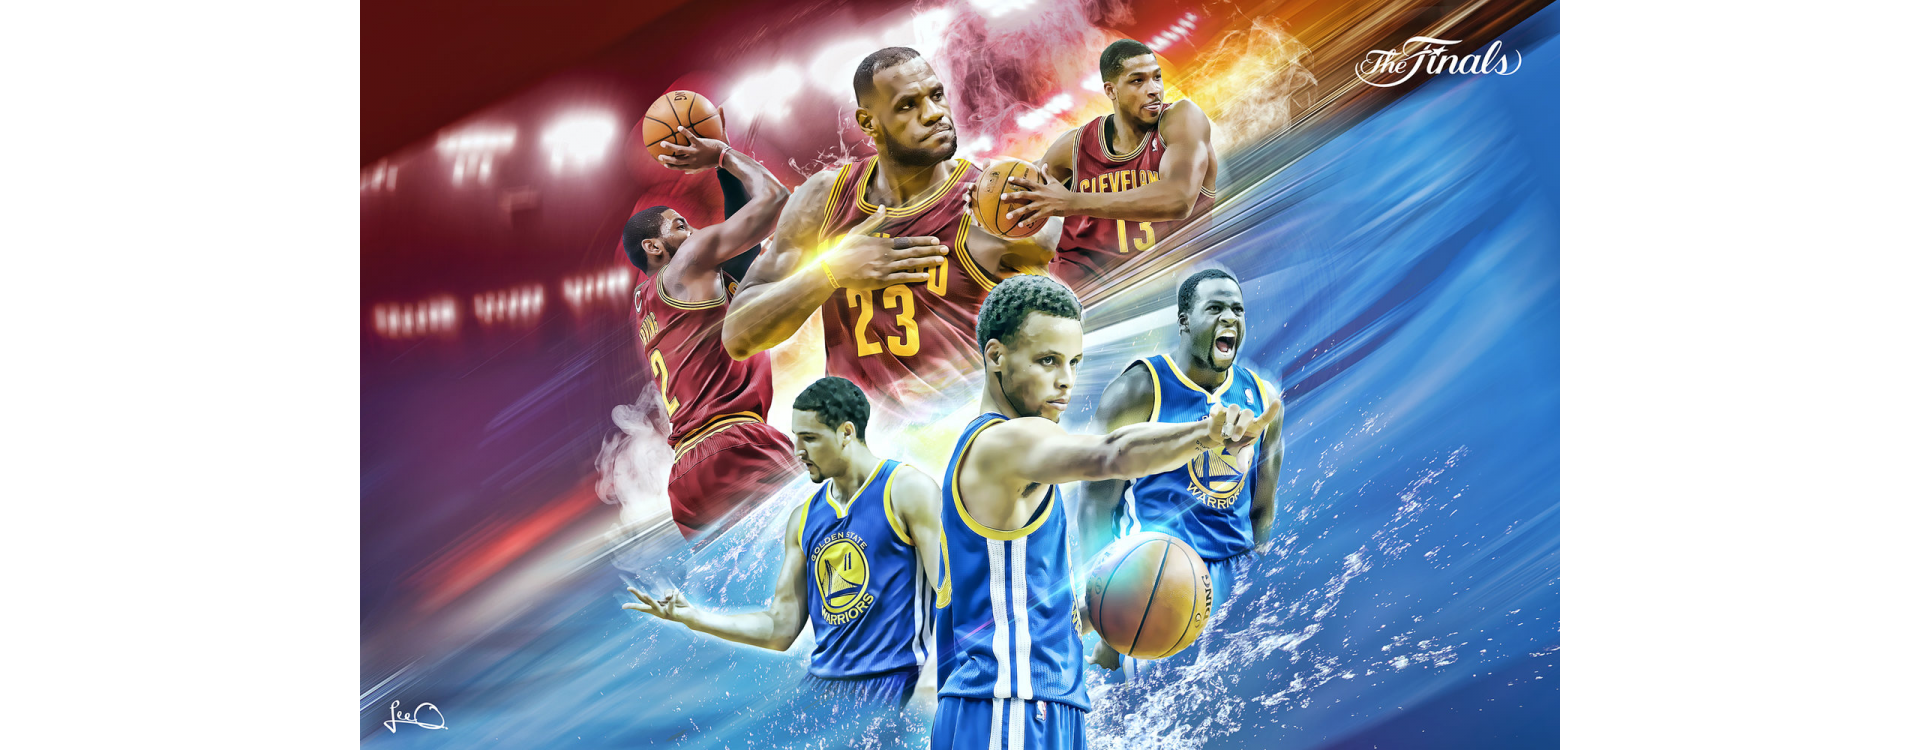 FINALES NBA 2015 CAVALIERS VS WARRIORS